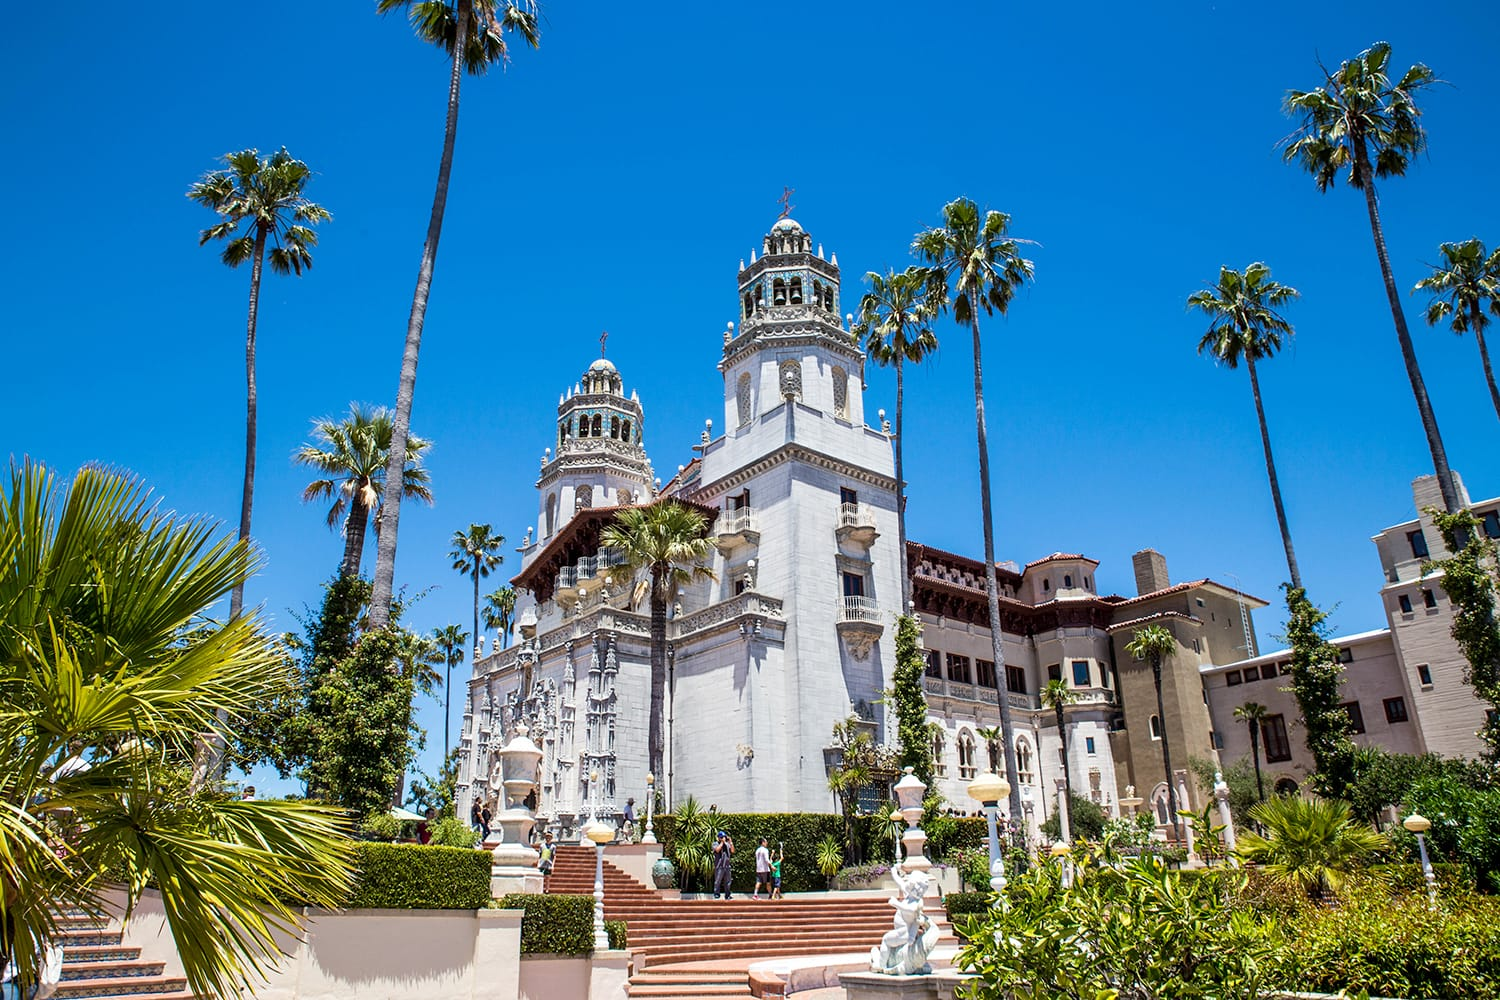 East side view of Hearst Castle in California, USA